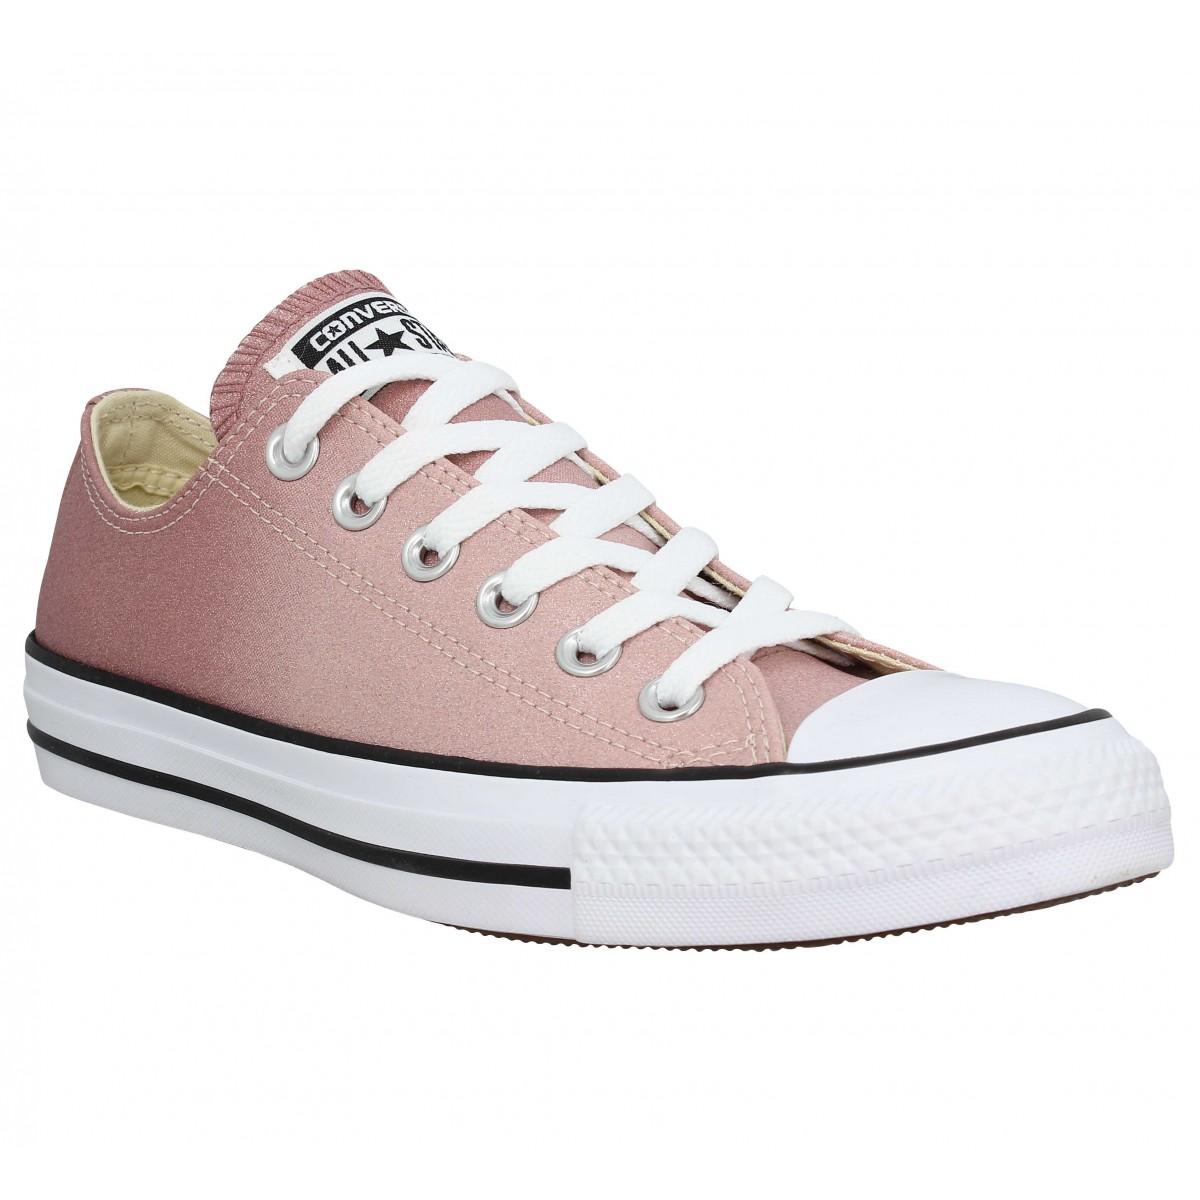 4fb1c76295a46 Baskets CONVERSE Chuck Taylor All Star paillettes Femme Saddle